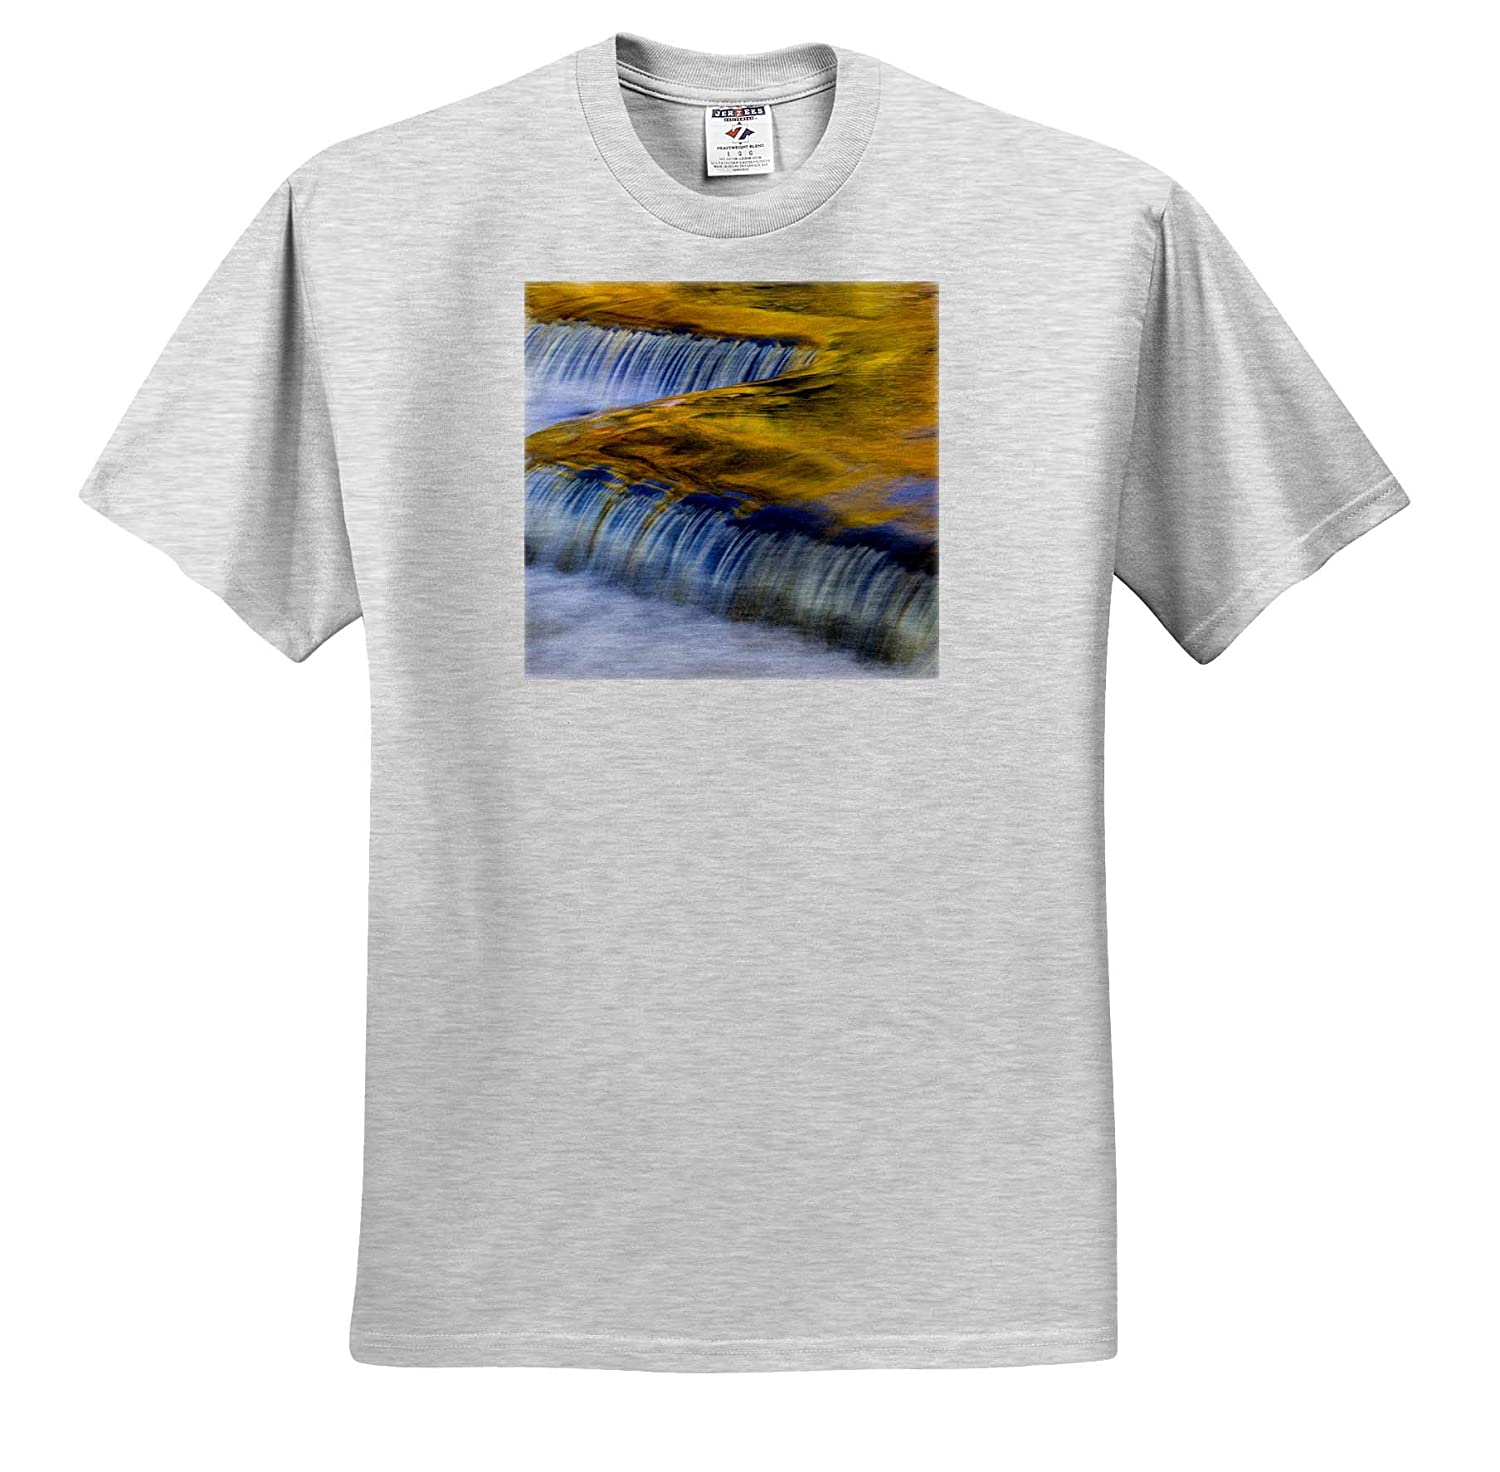 Autumn Yellow and Gold Reflect from Tree into Waterfall - Adult T-Shirt XL ts/_314861 3dRose Danita Delimont